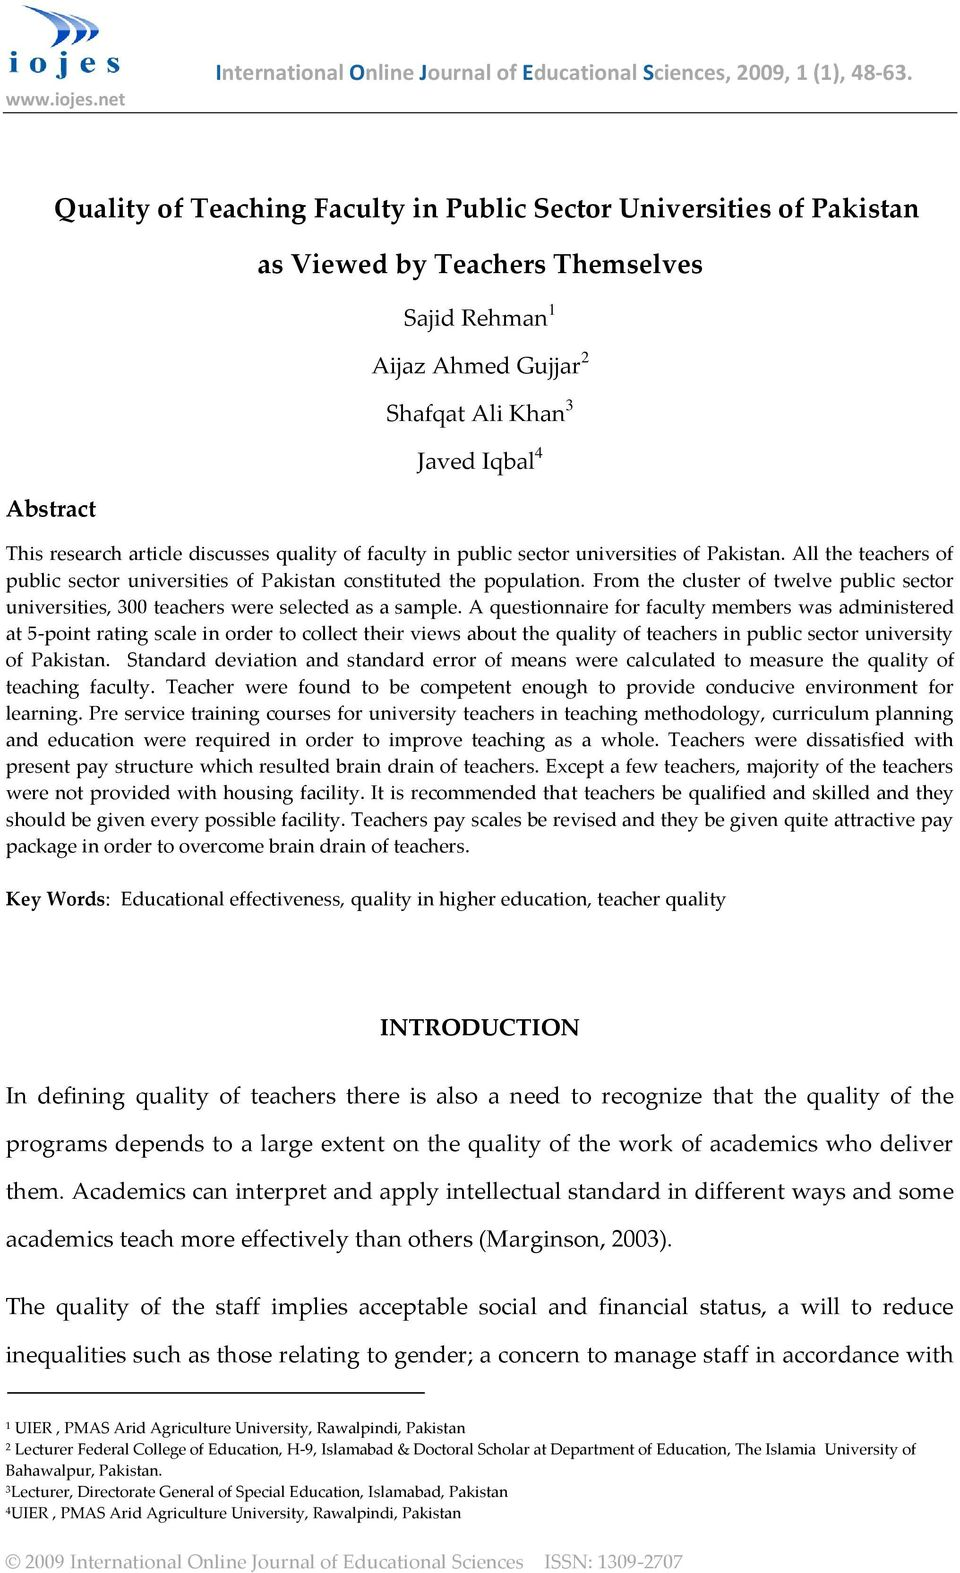 article discusses quality of faculty in public sector universities of Pakistan. All the teachers of public sector universities of Pakistan constituted the population.